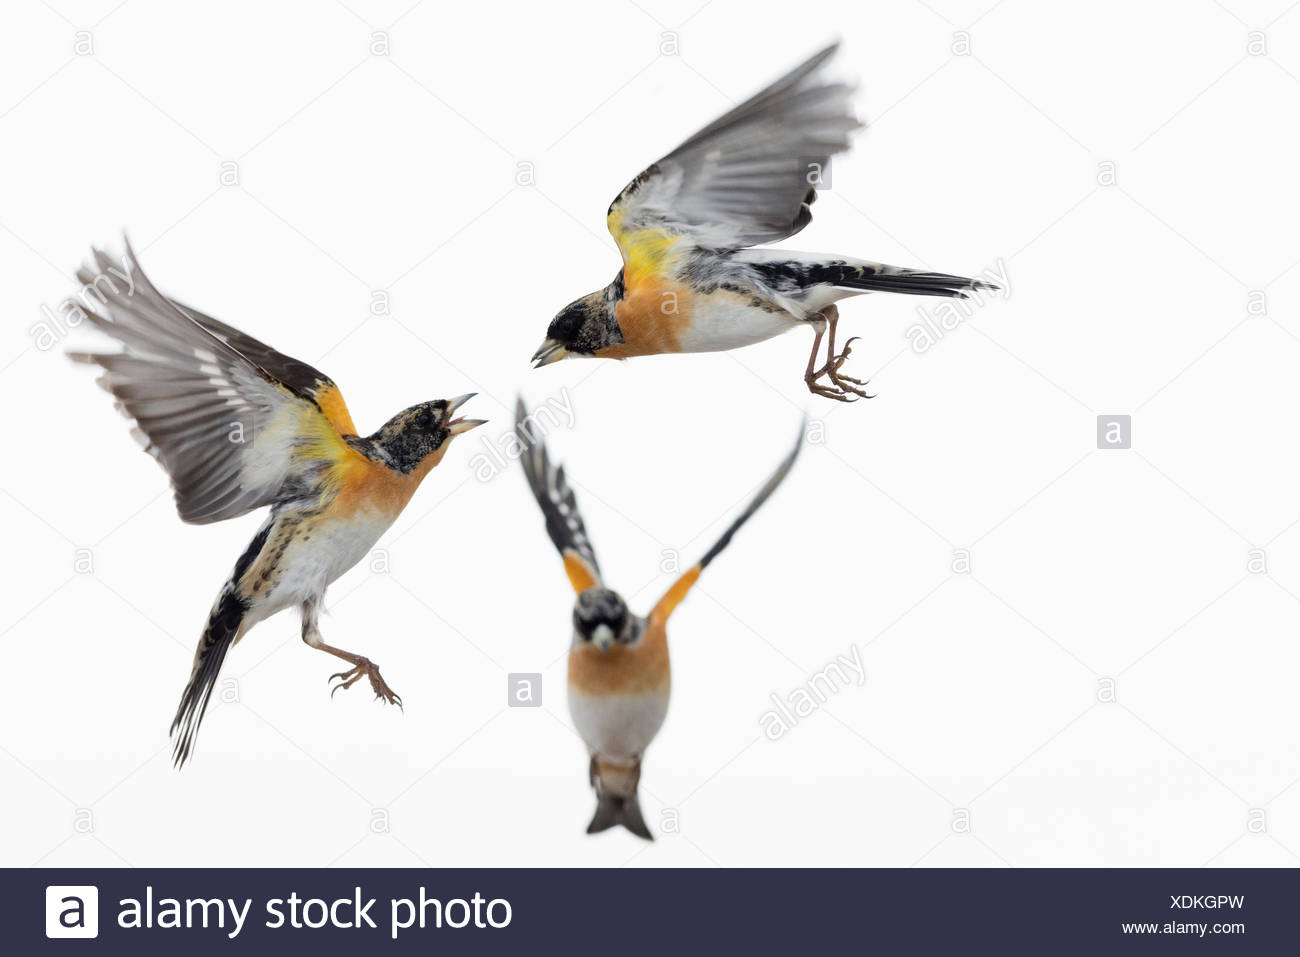 Male brambling, Fringilla montifringilla, birds fighting. - Stock Image